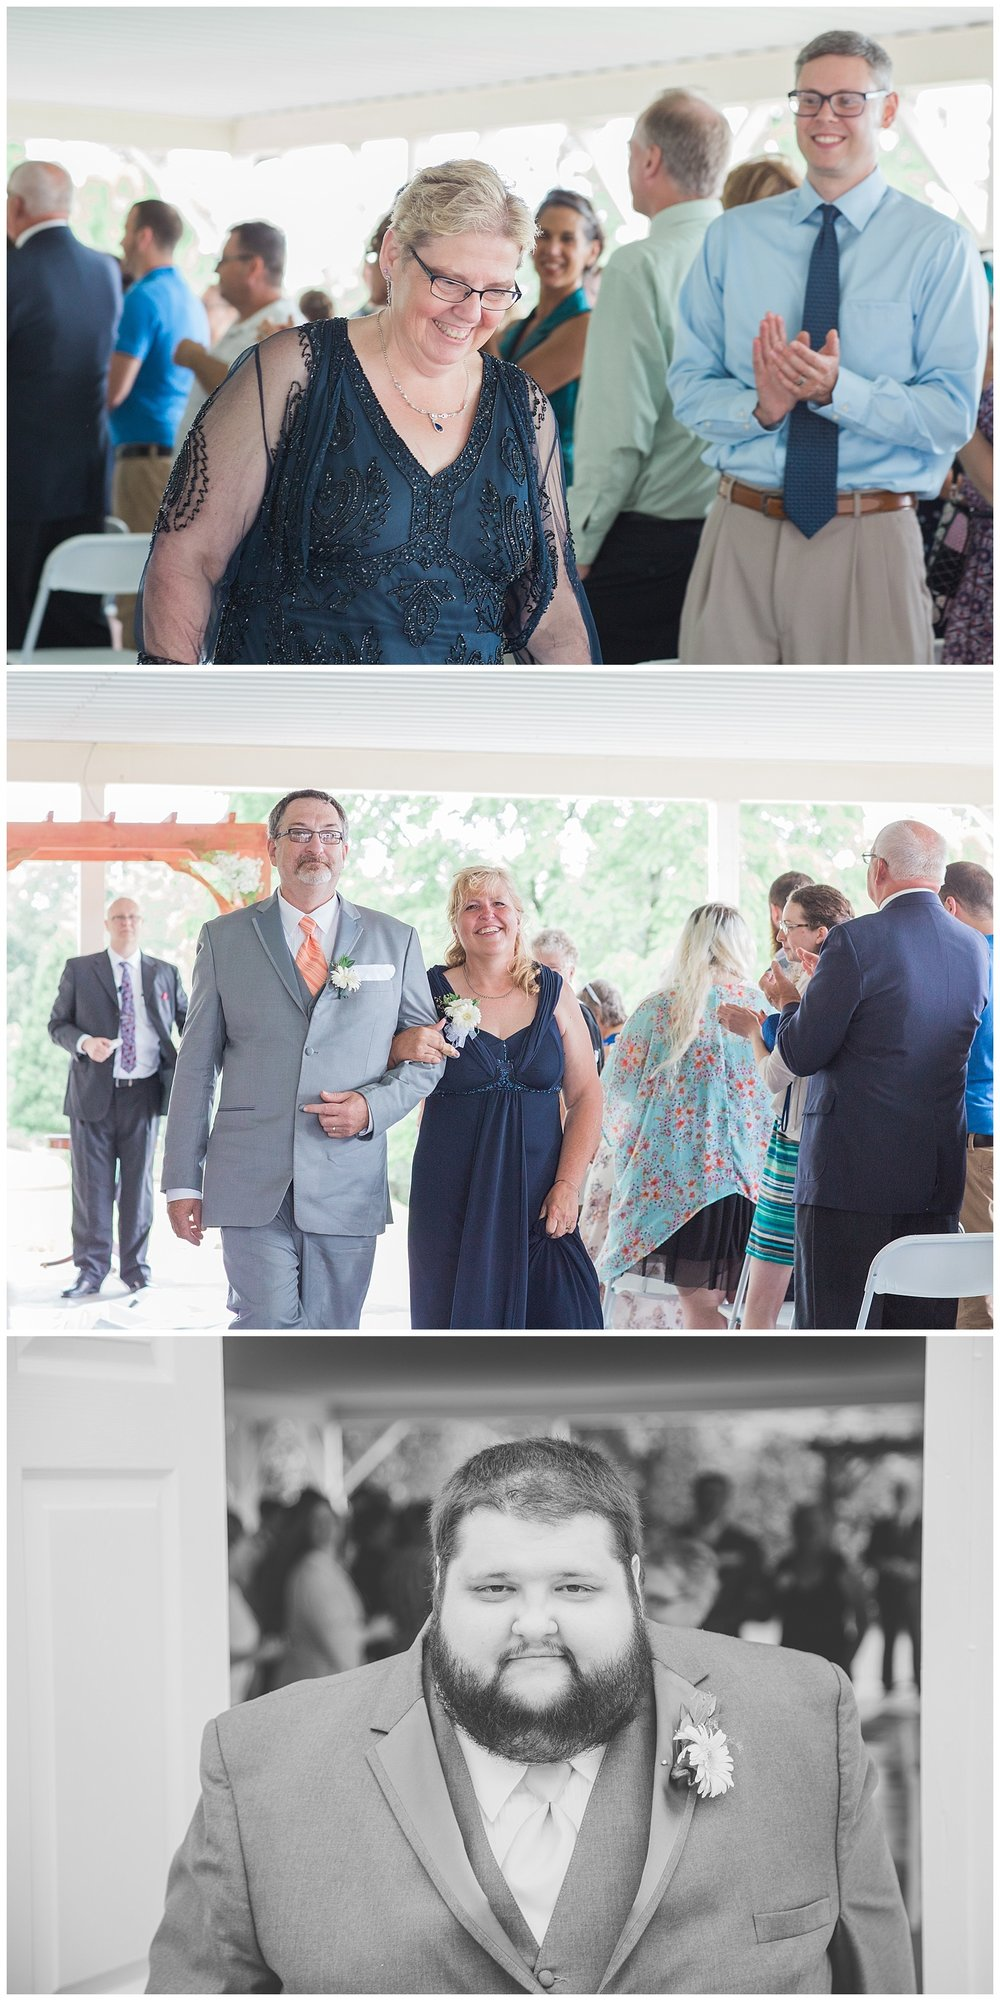 Brian and Molly Wed in Conesus NY - Lass & Beau-379_Buffalo wedding photography.jpg